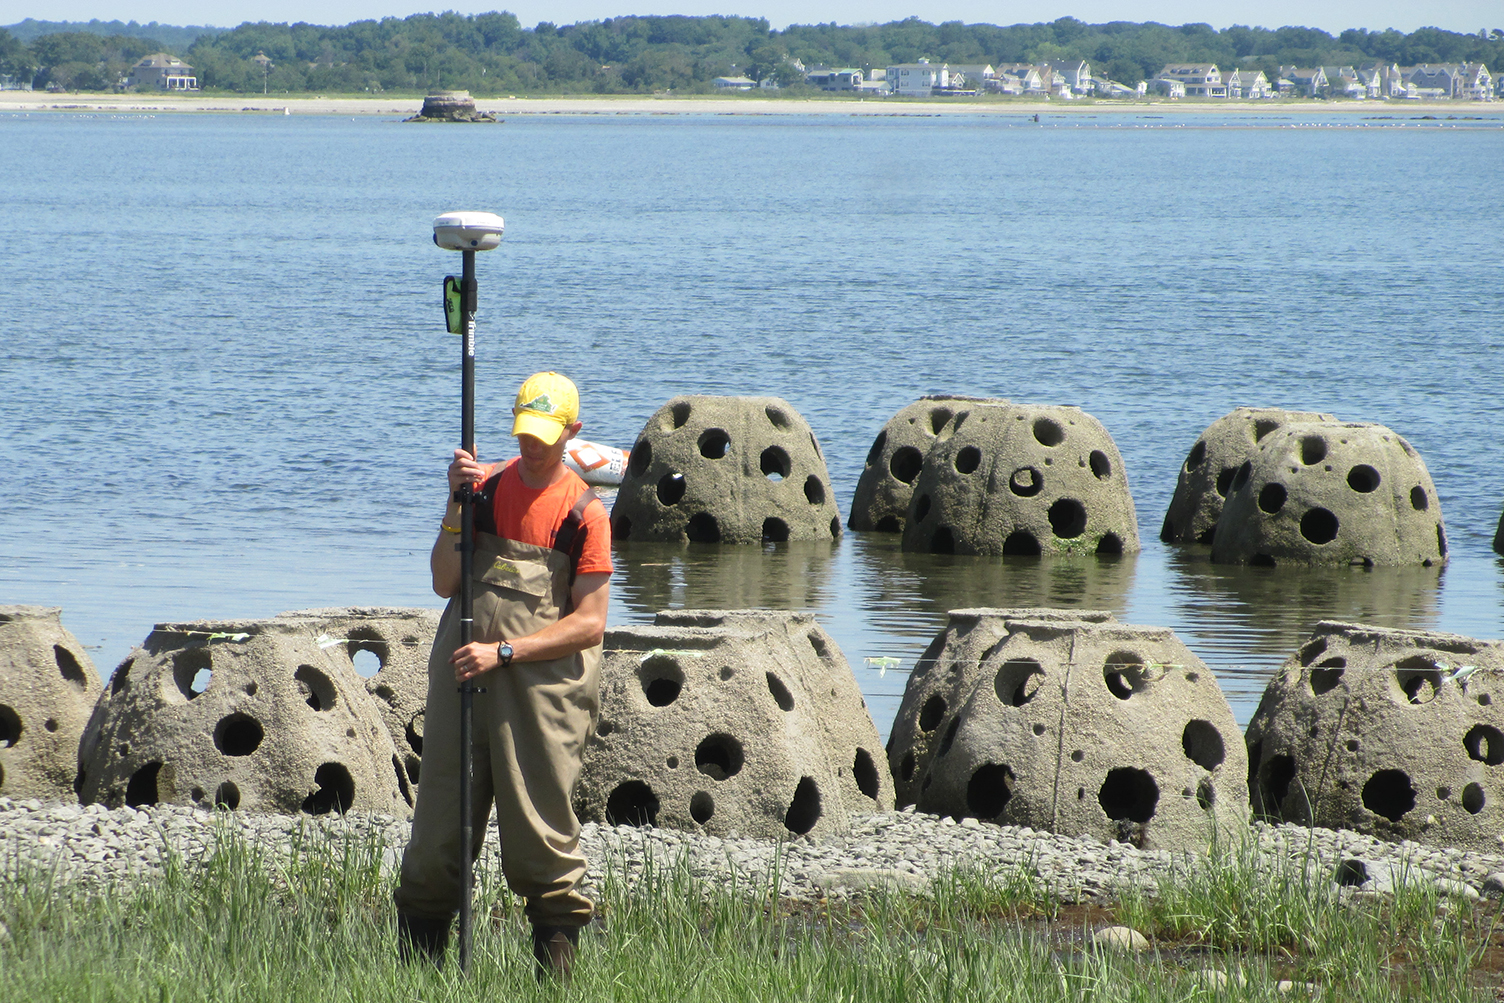 Hauser worked on shoreline restoration projects in Connecticut and elsewhere around the country before joining Delaware Sea Grant.